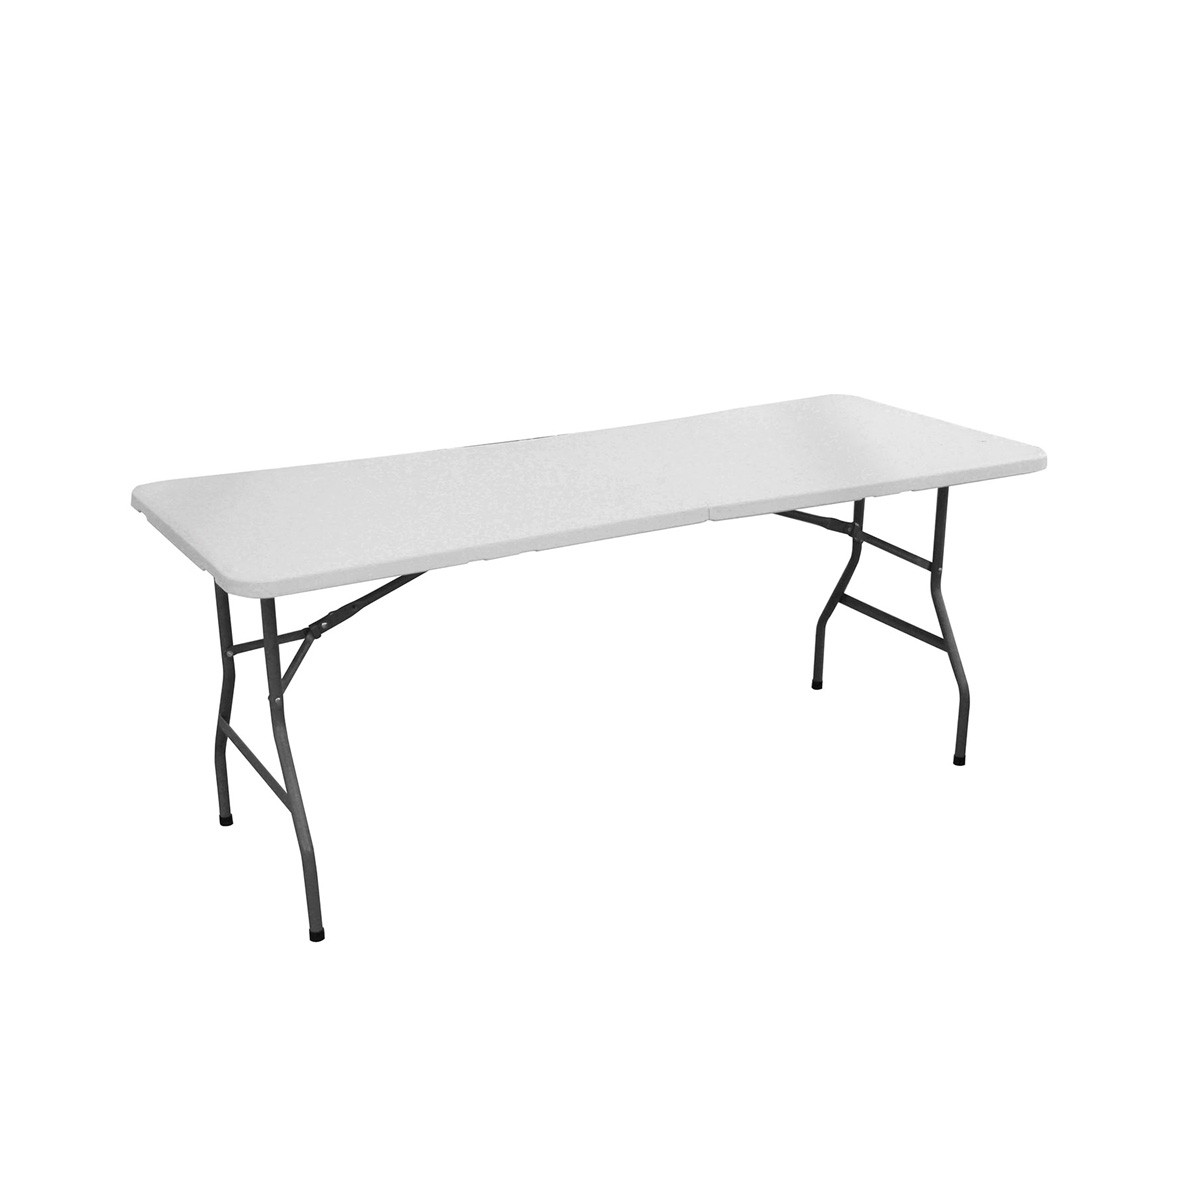 Table D Appoint Blanche Table D 39appoint Pliable Blanche Decoratie Fr